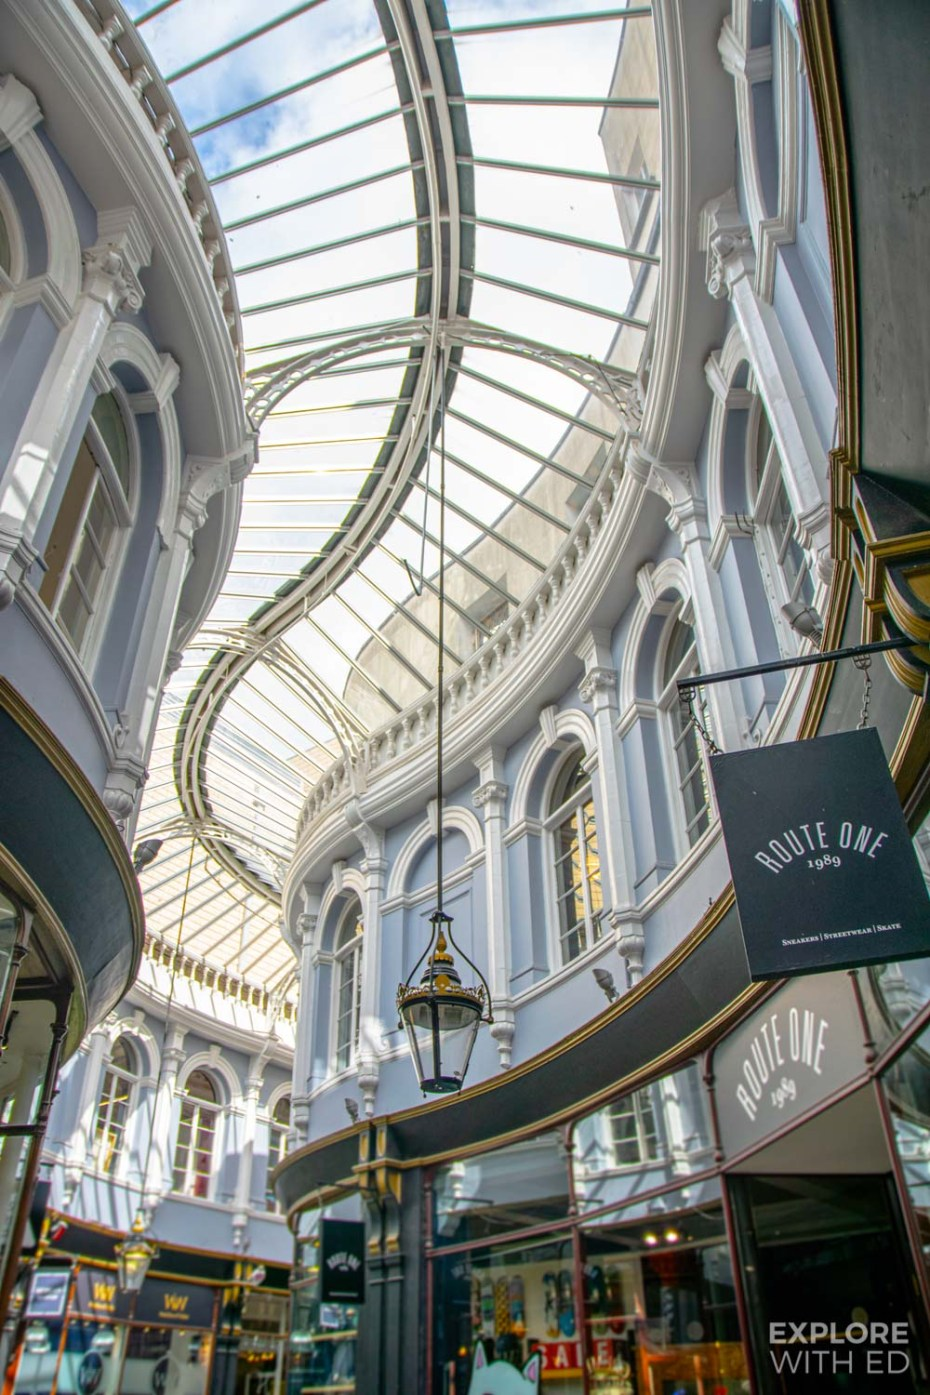 The architecture of Cardiff's beautiful Arcades